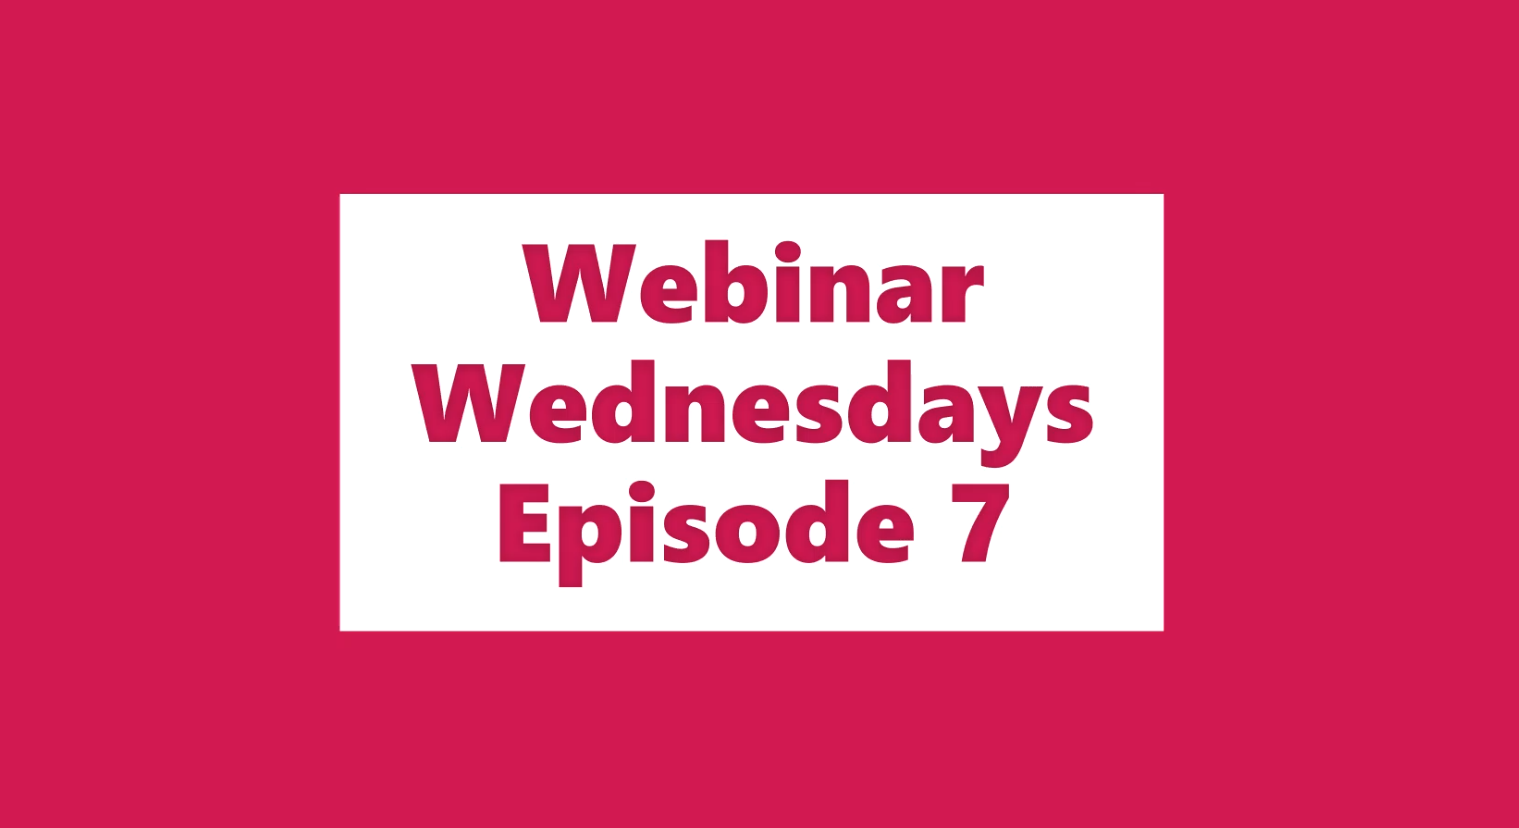 Webinar Wednesdays Episode 7(a)